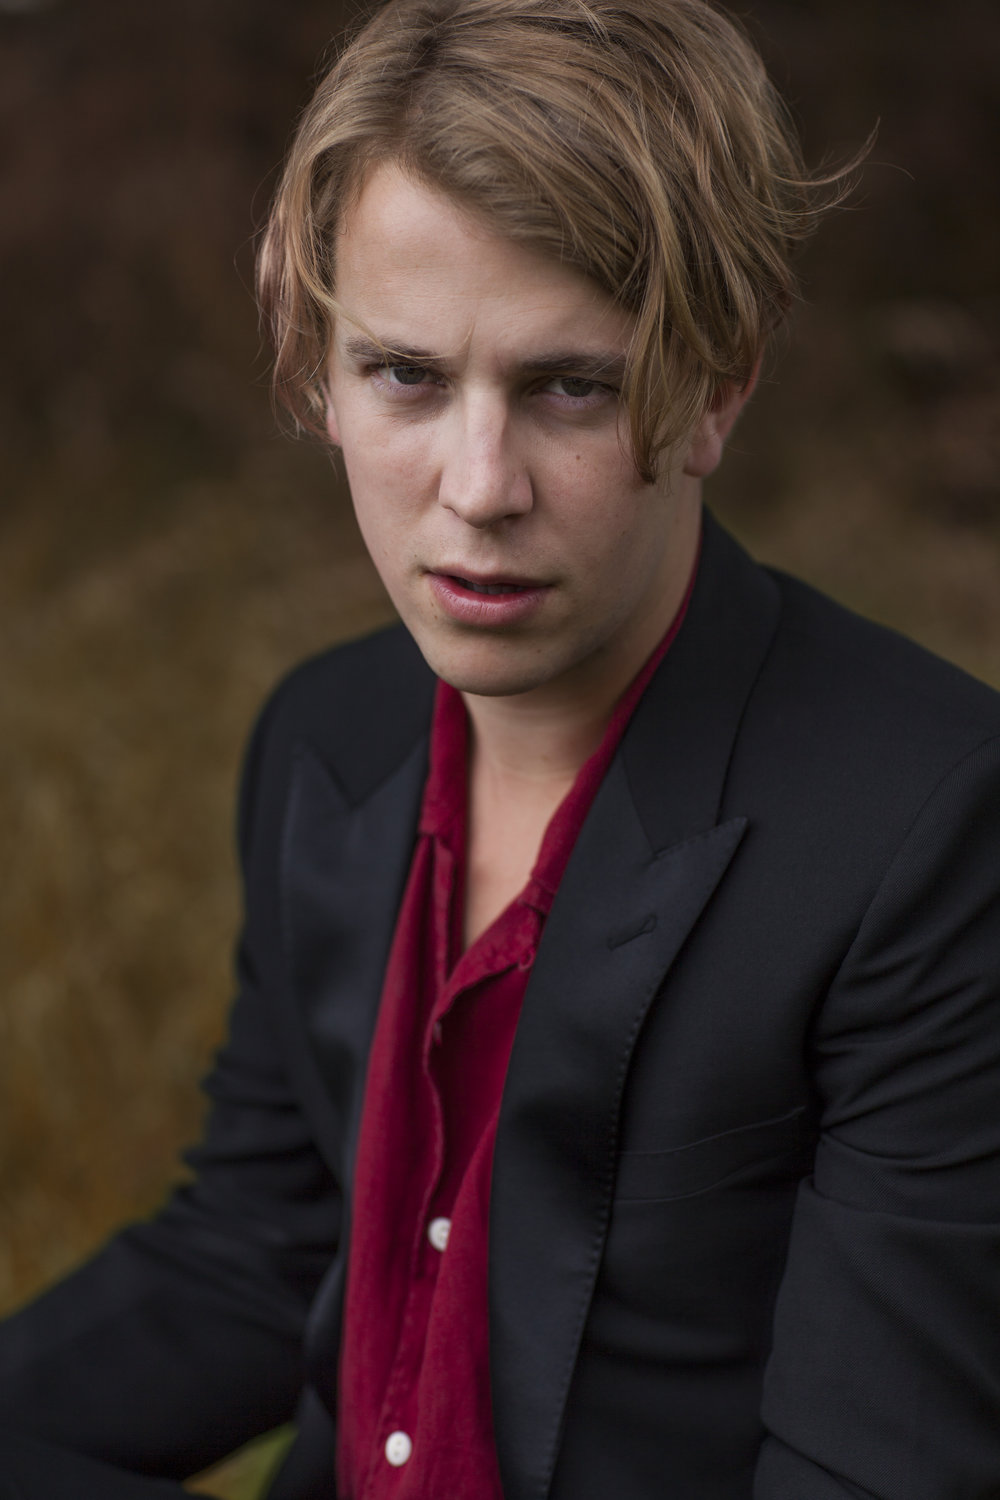 TomOdell_0591_HR.jpg